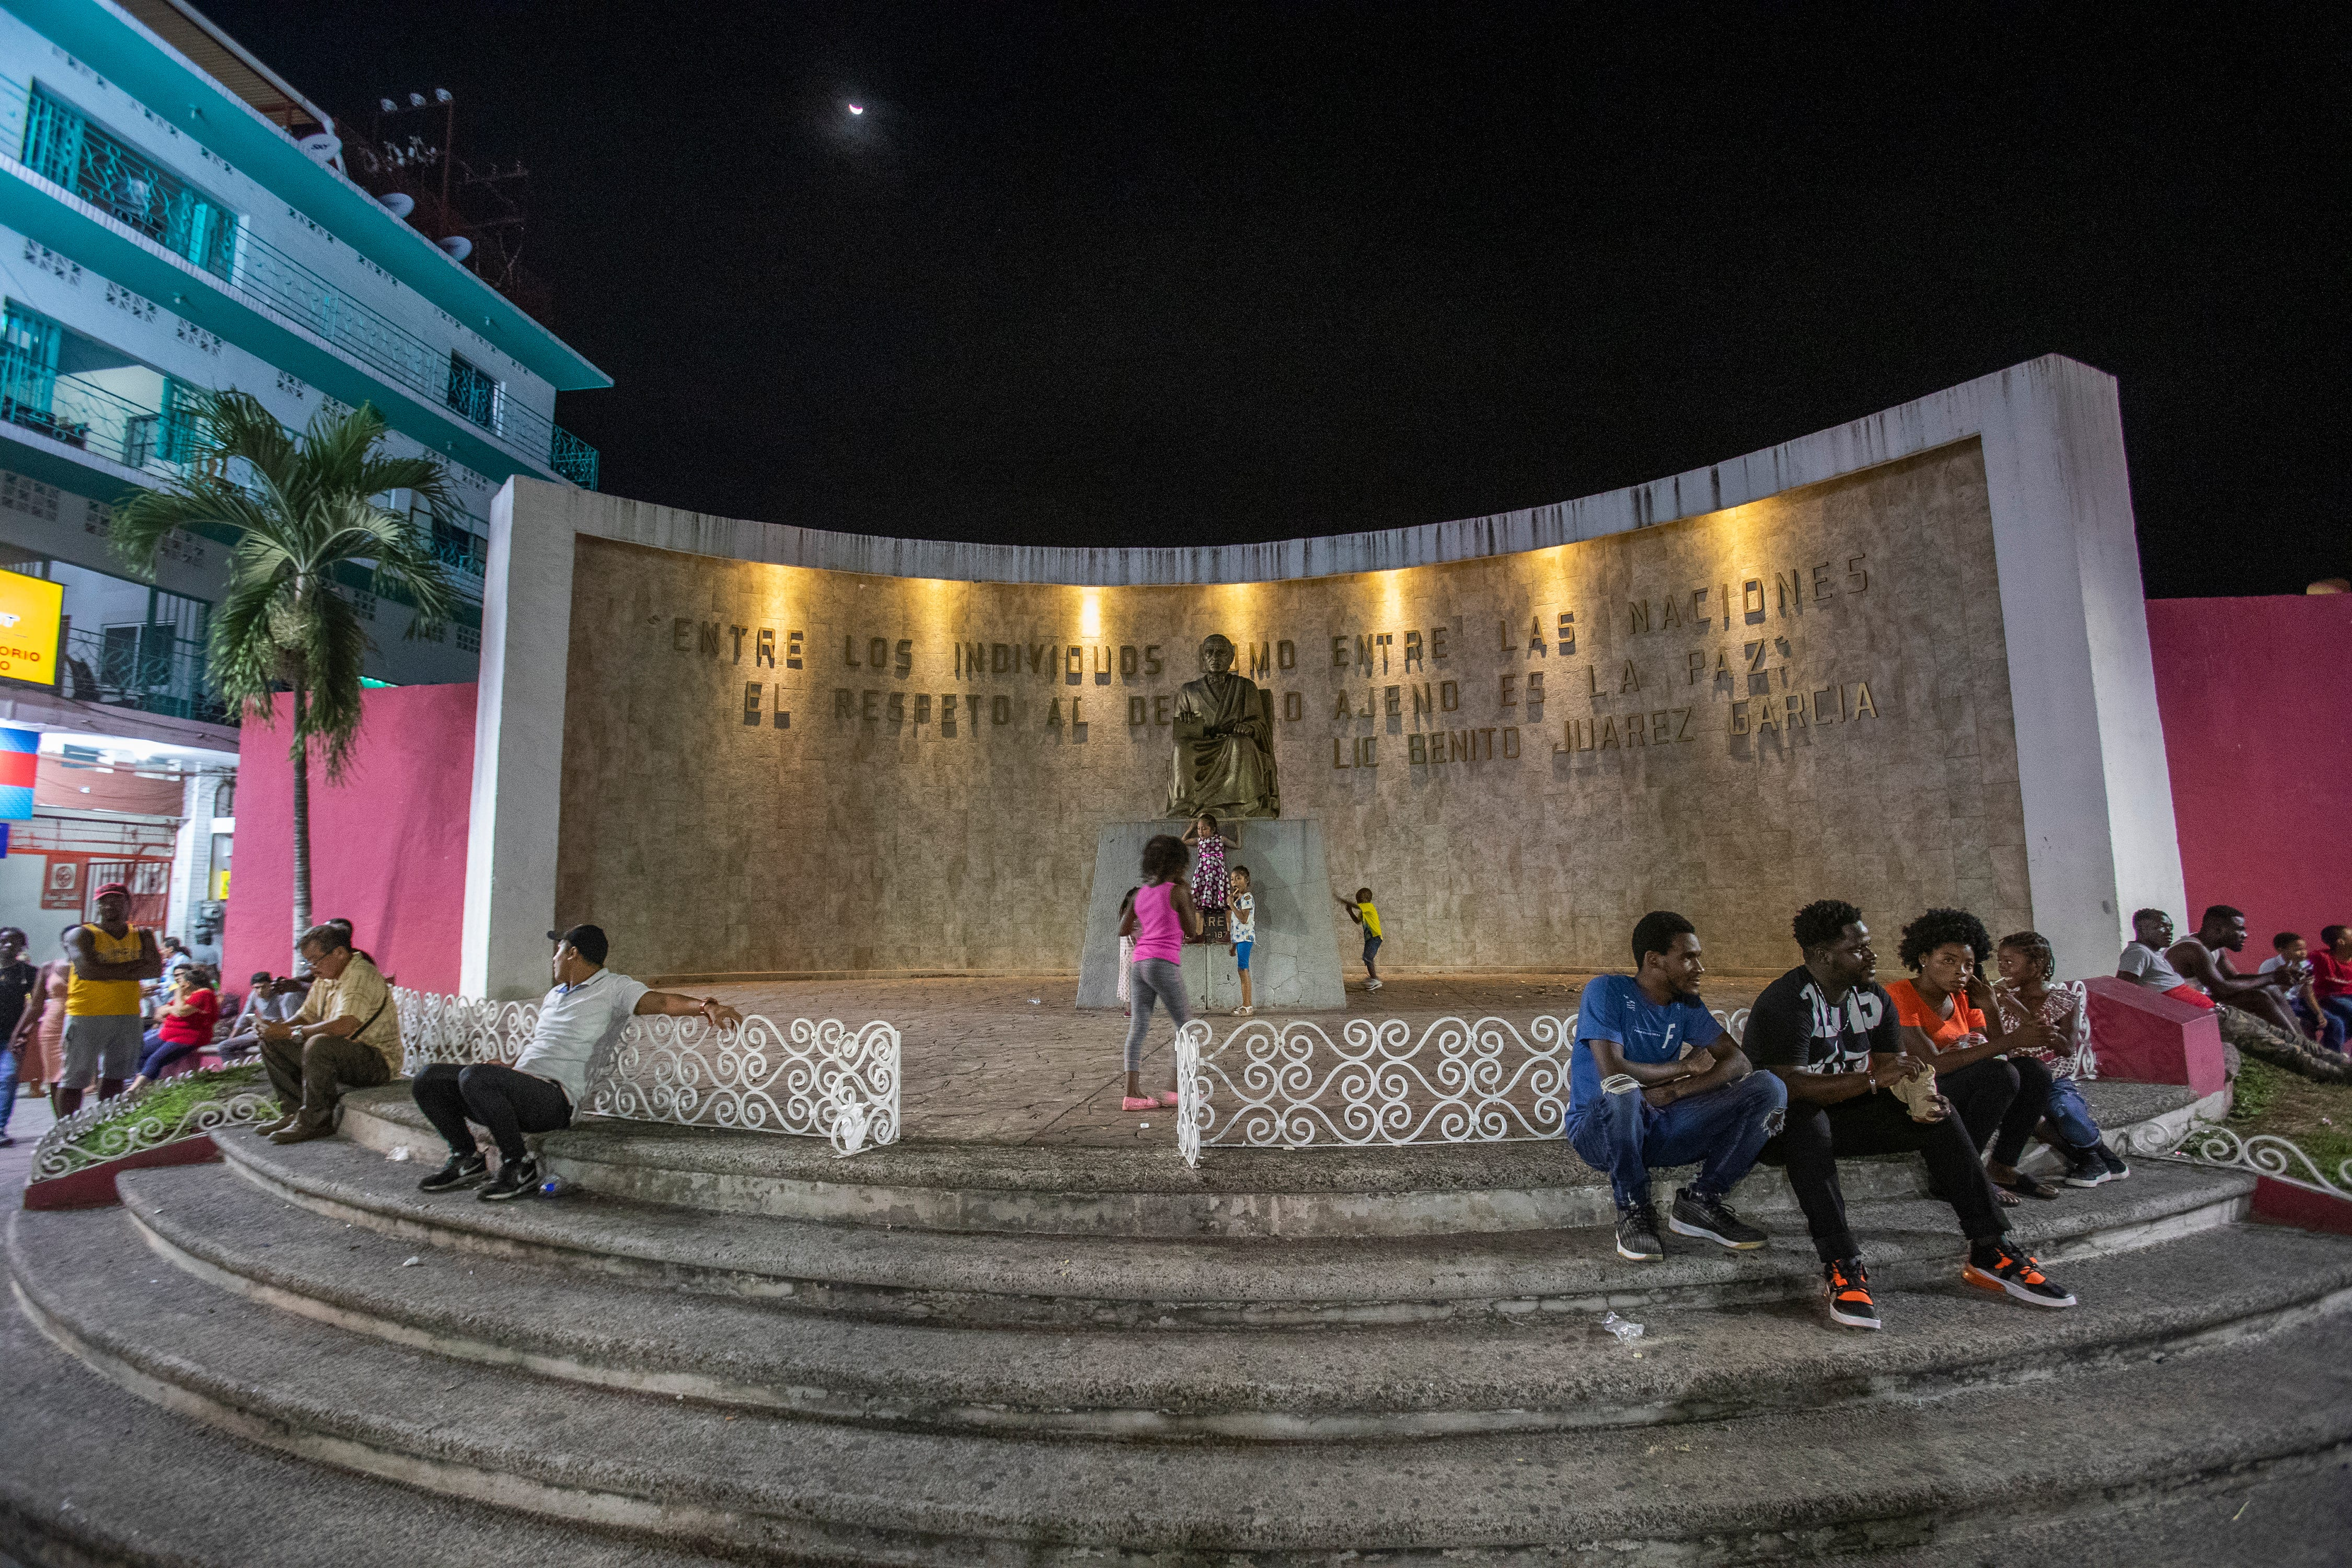 A plaza dedicated to Mexico's ethnic groups has become a meeting place for migrants from all over the world in Tapachula, Chiapas. In the background, the statue of Mexico's first indigenous, and most celebrated, president is seen in background.